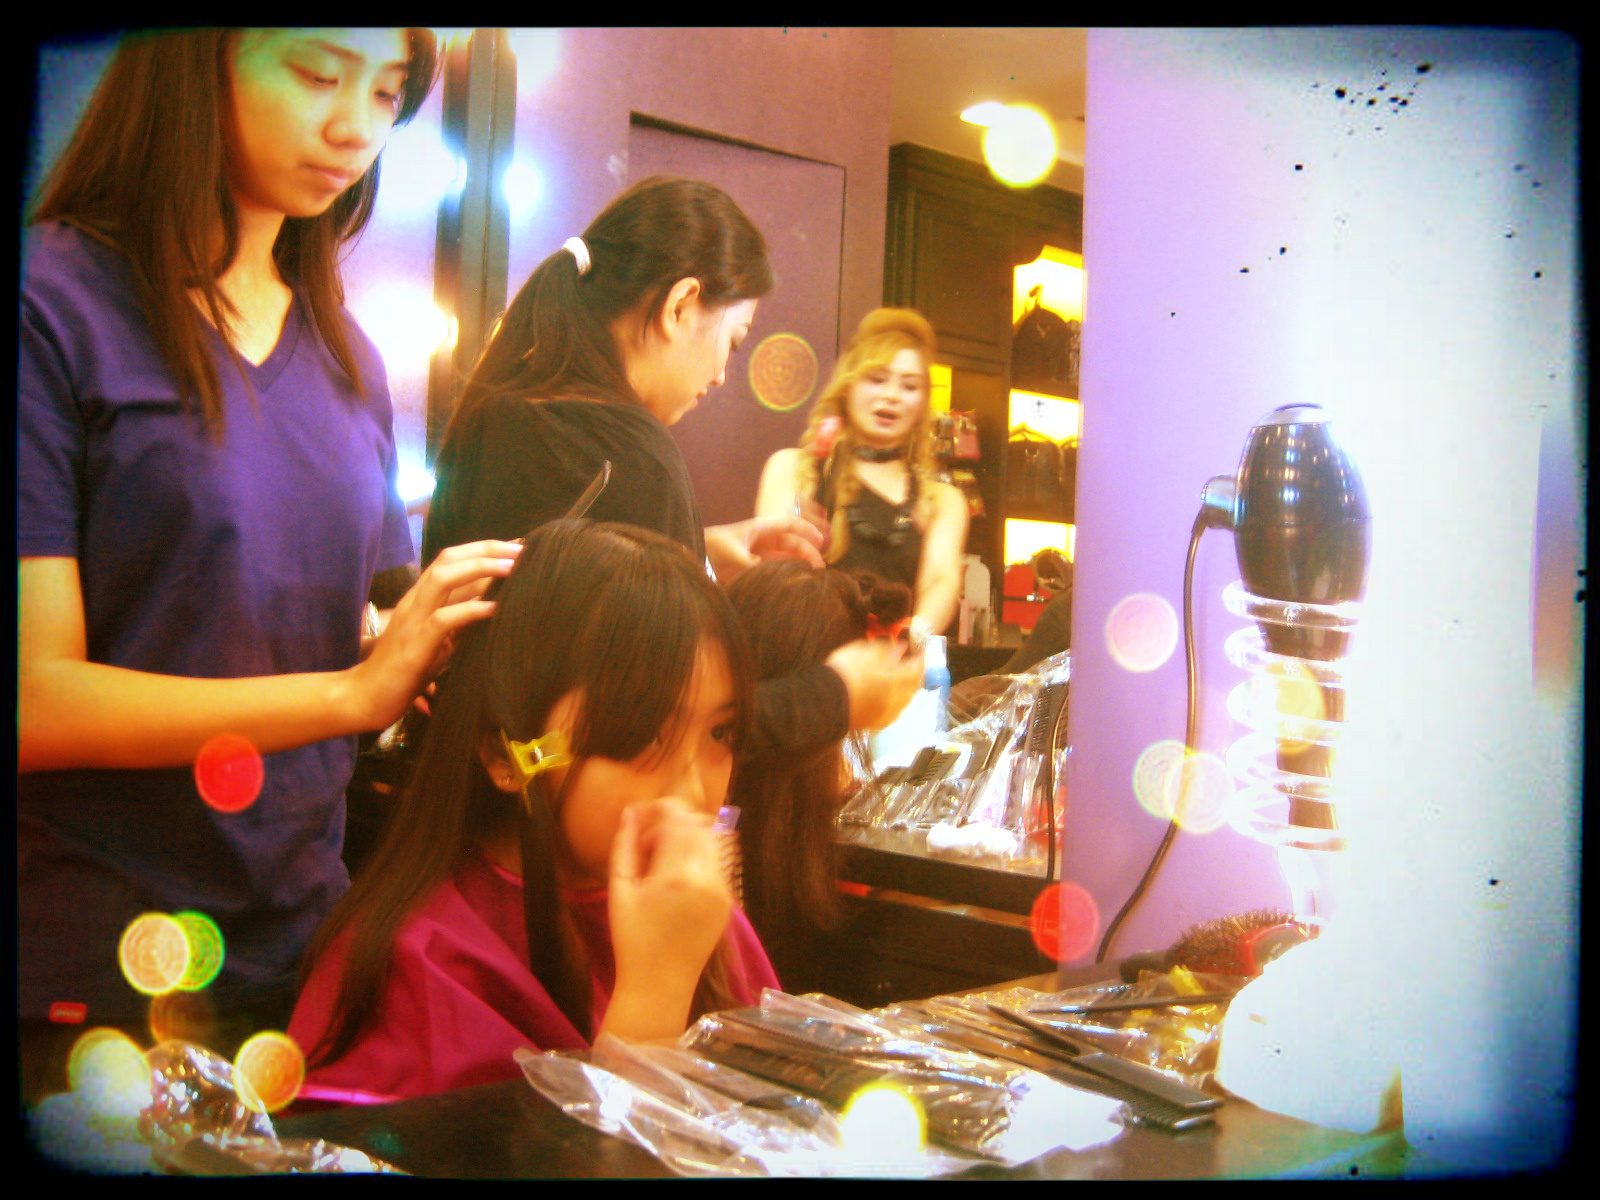 SHMU Skys Hair And Makeup DAY 1 15 Hrs Of